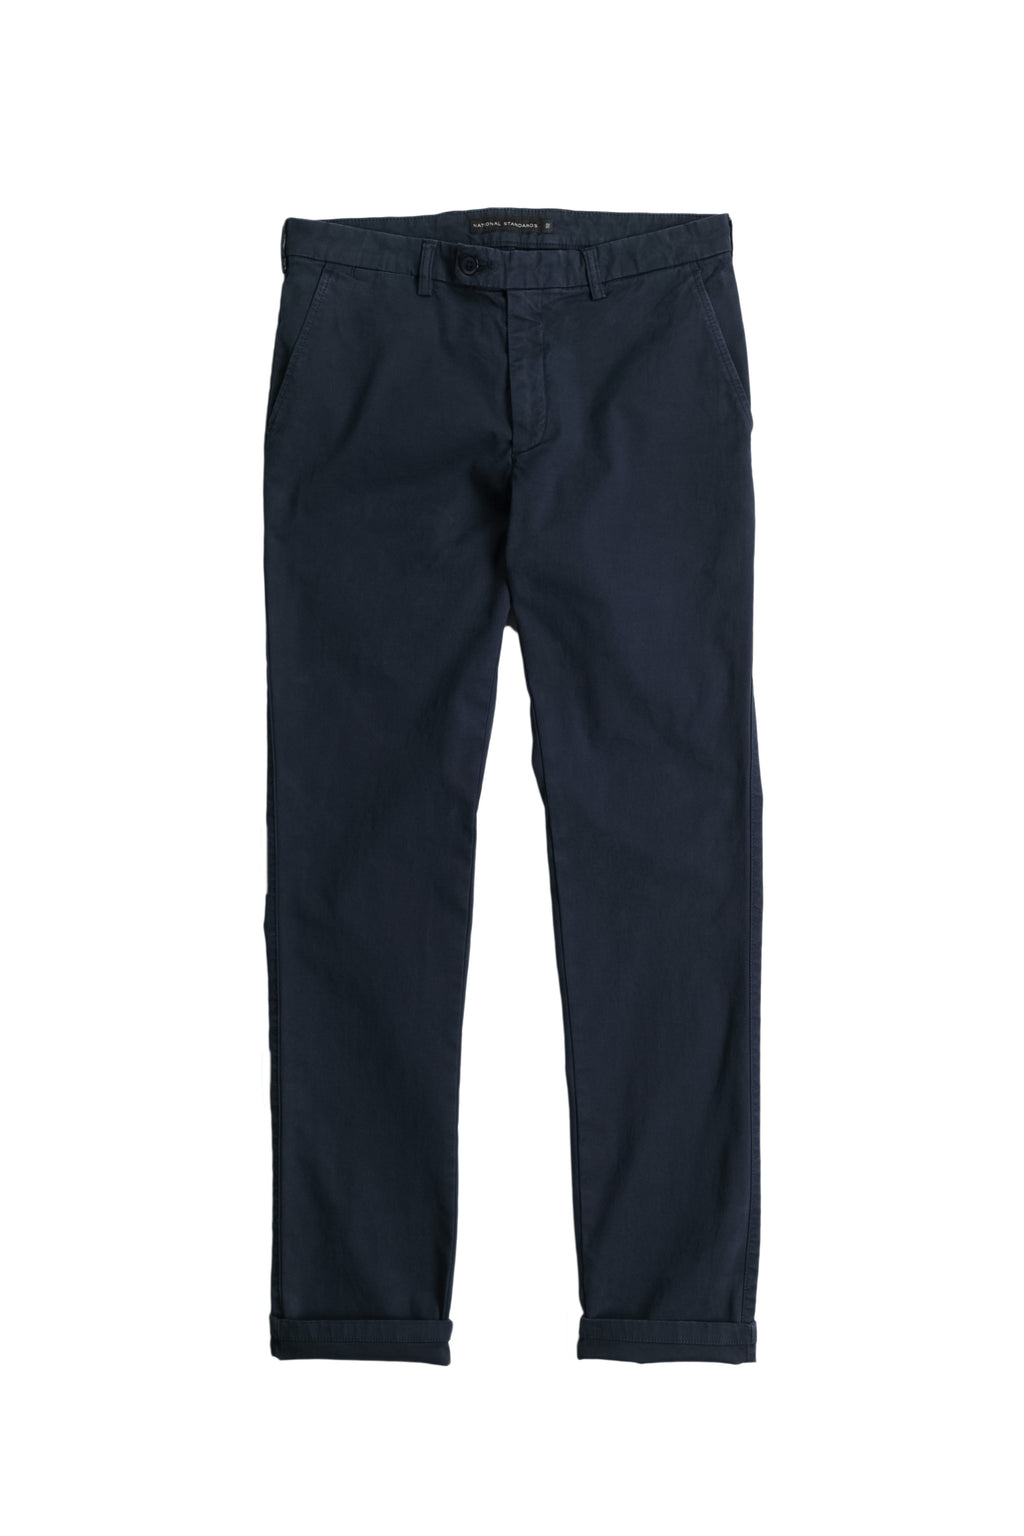 Stretch Chino in Navy Front